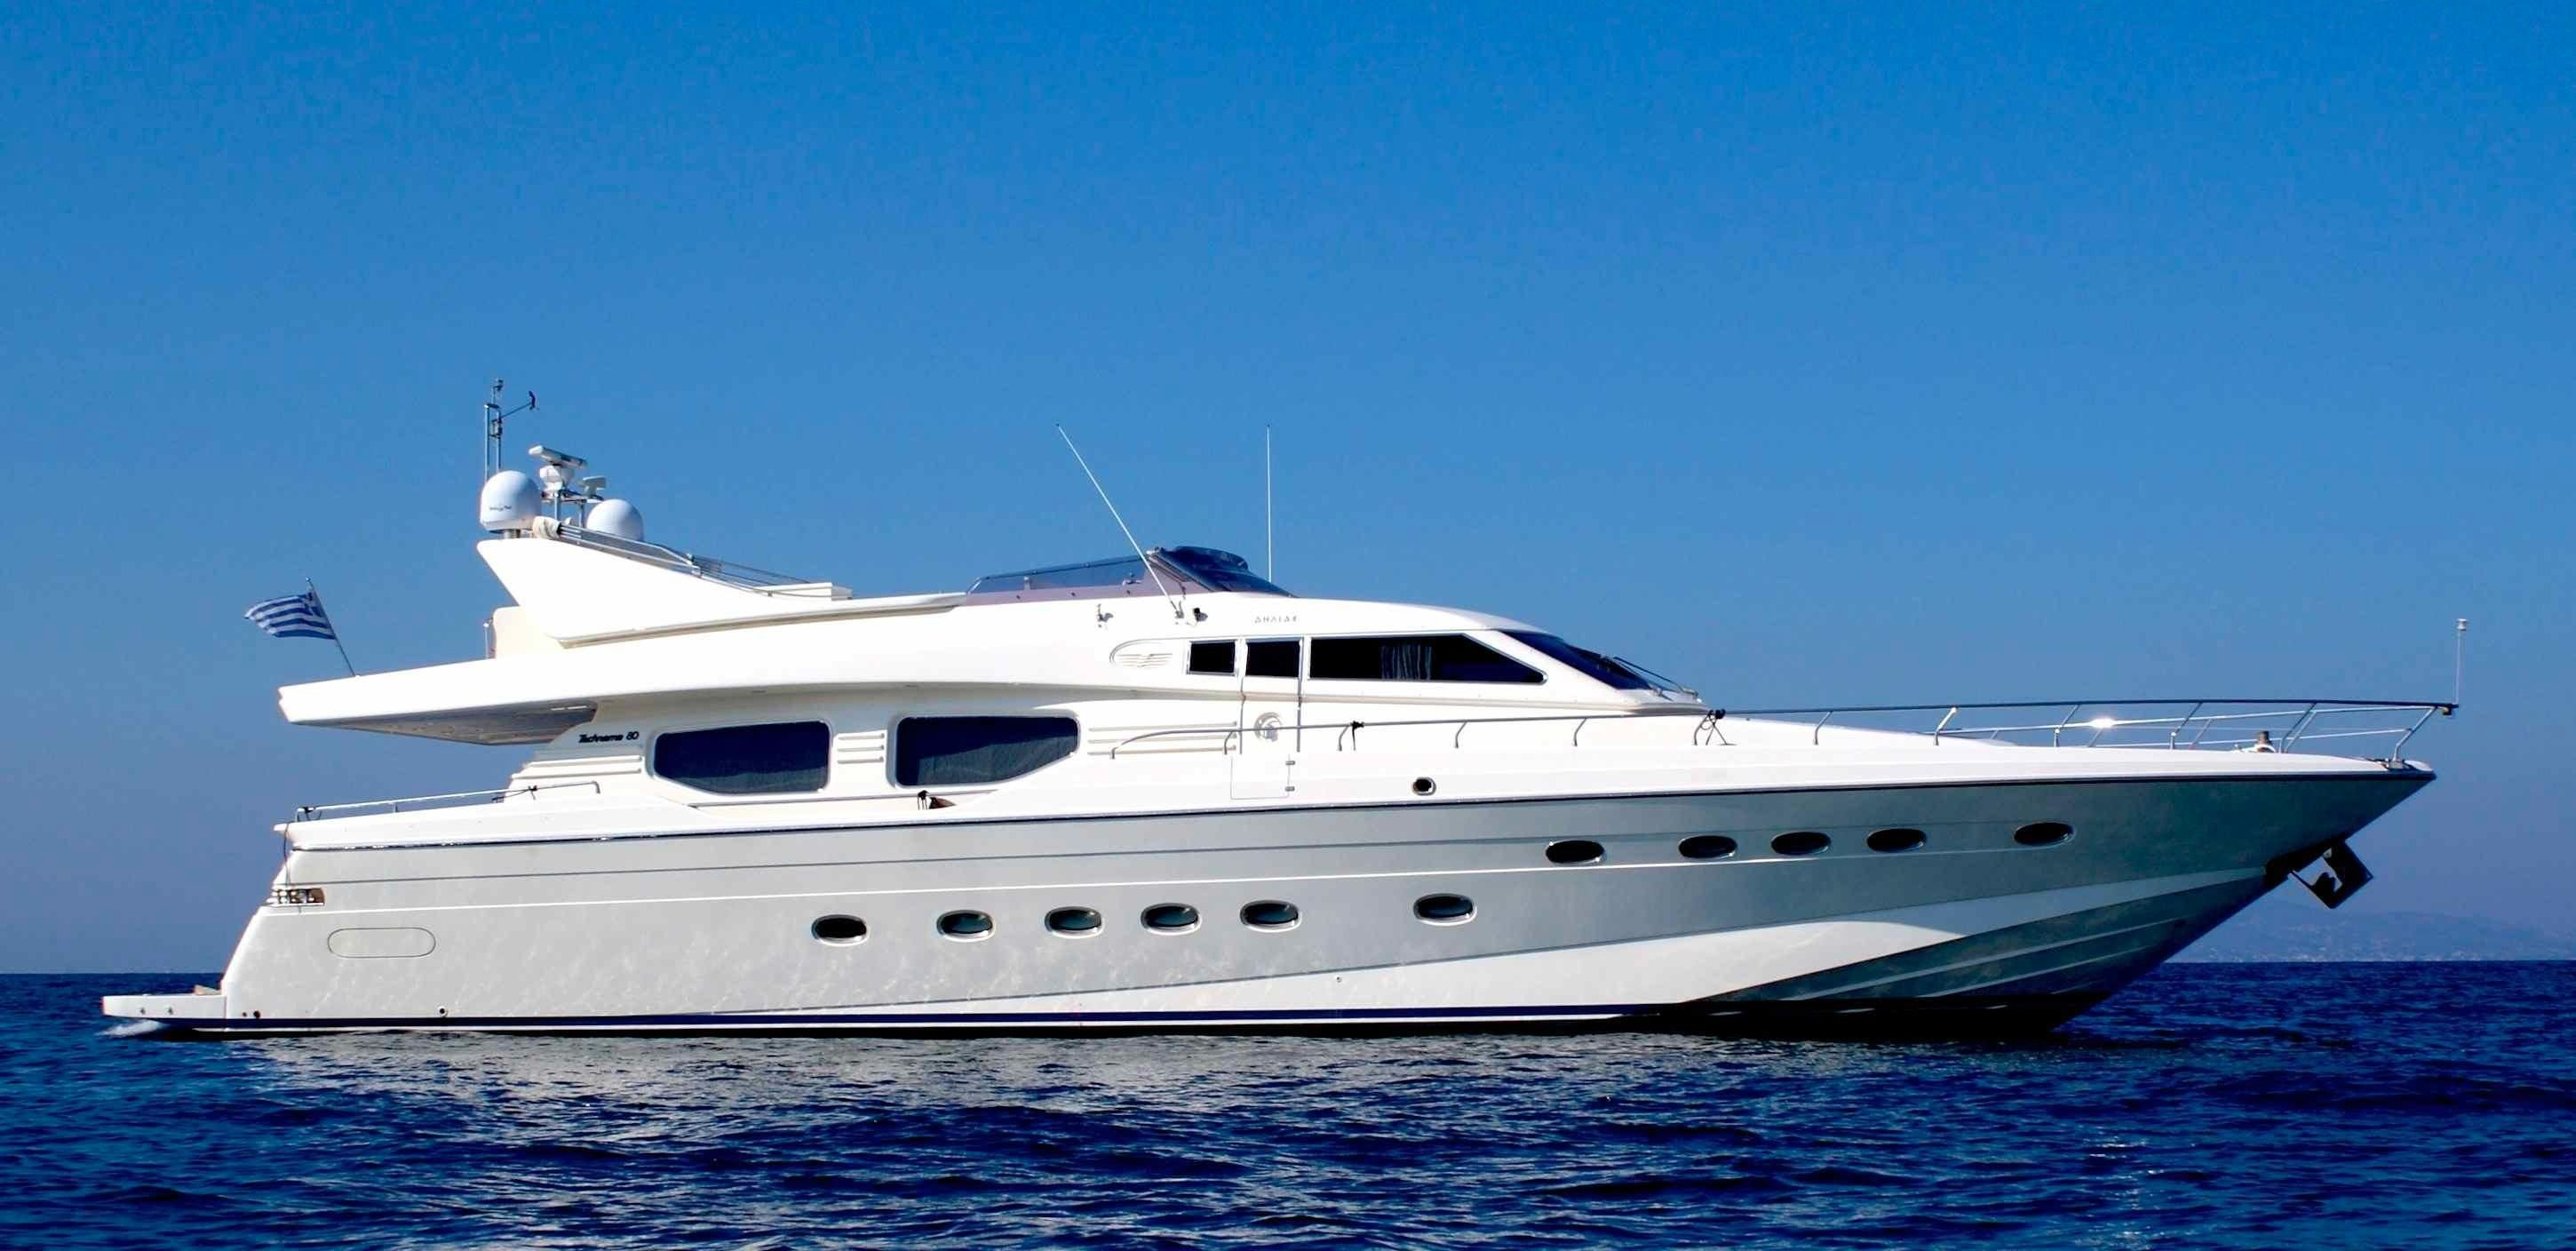 2000 posillipo technema 80 power boat for sale www for Large motor yachts for sale